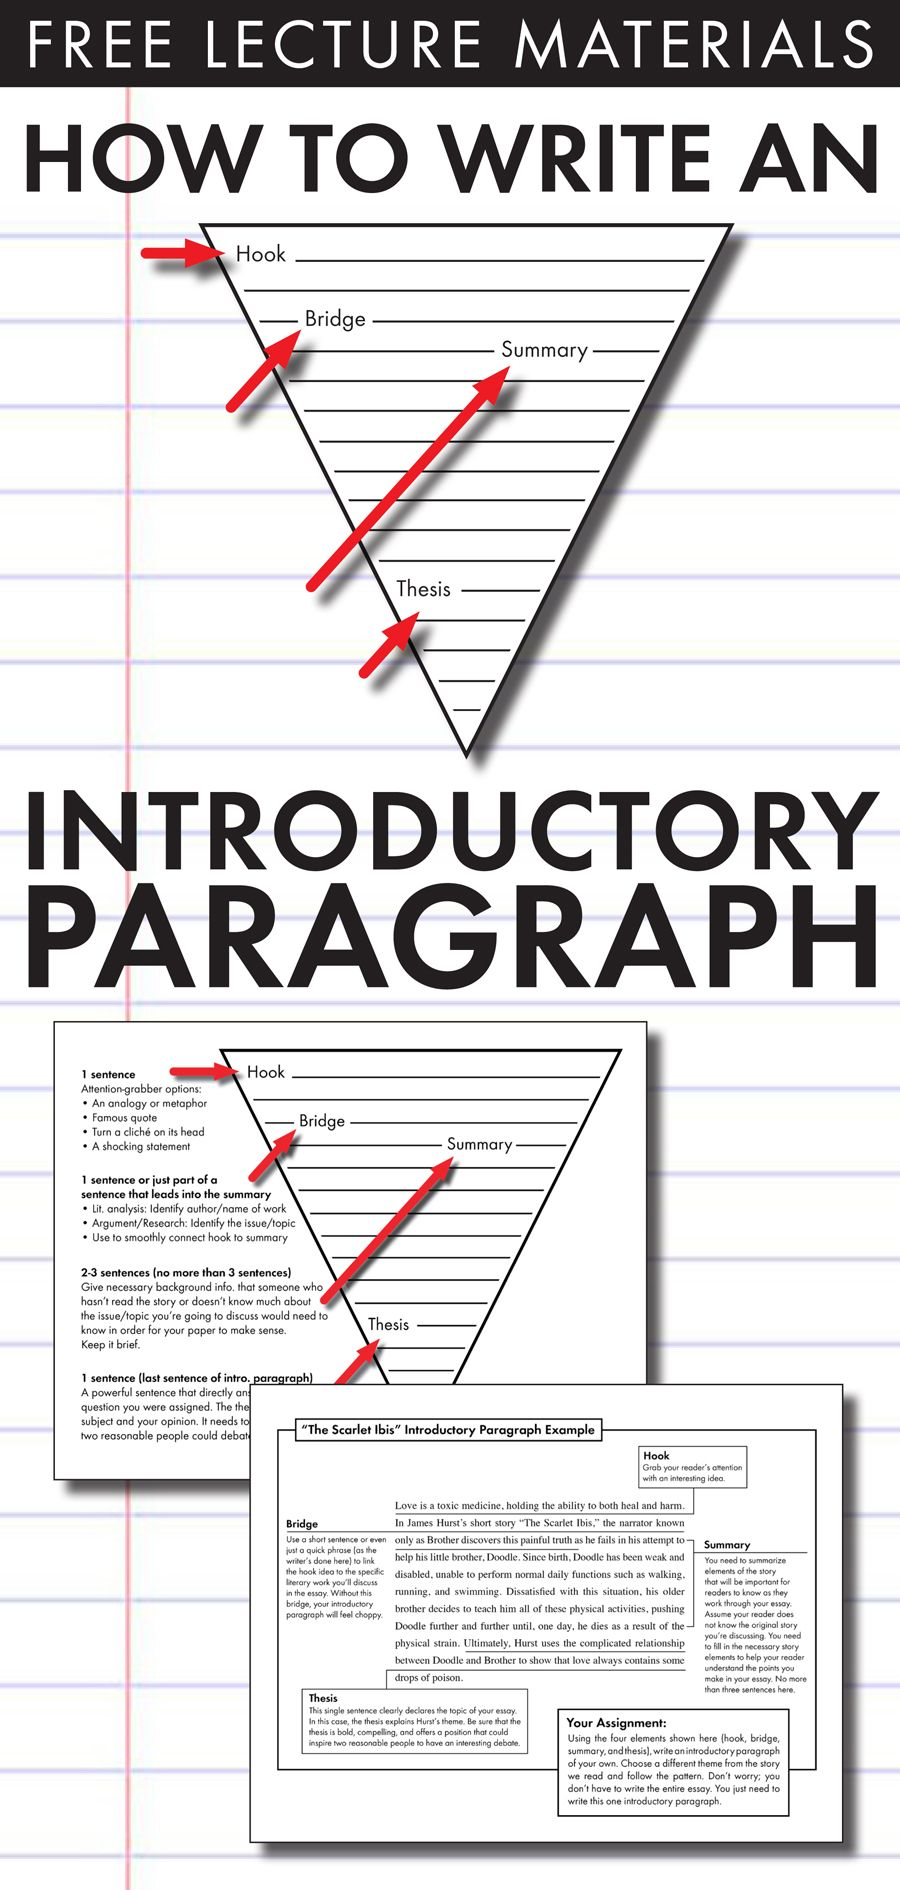 Four-Step Introductory Paragraph Format